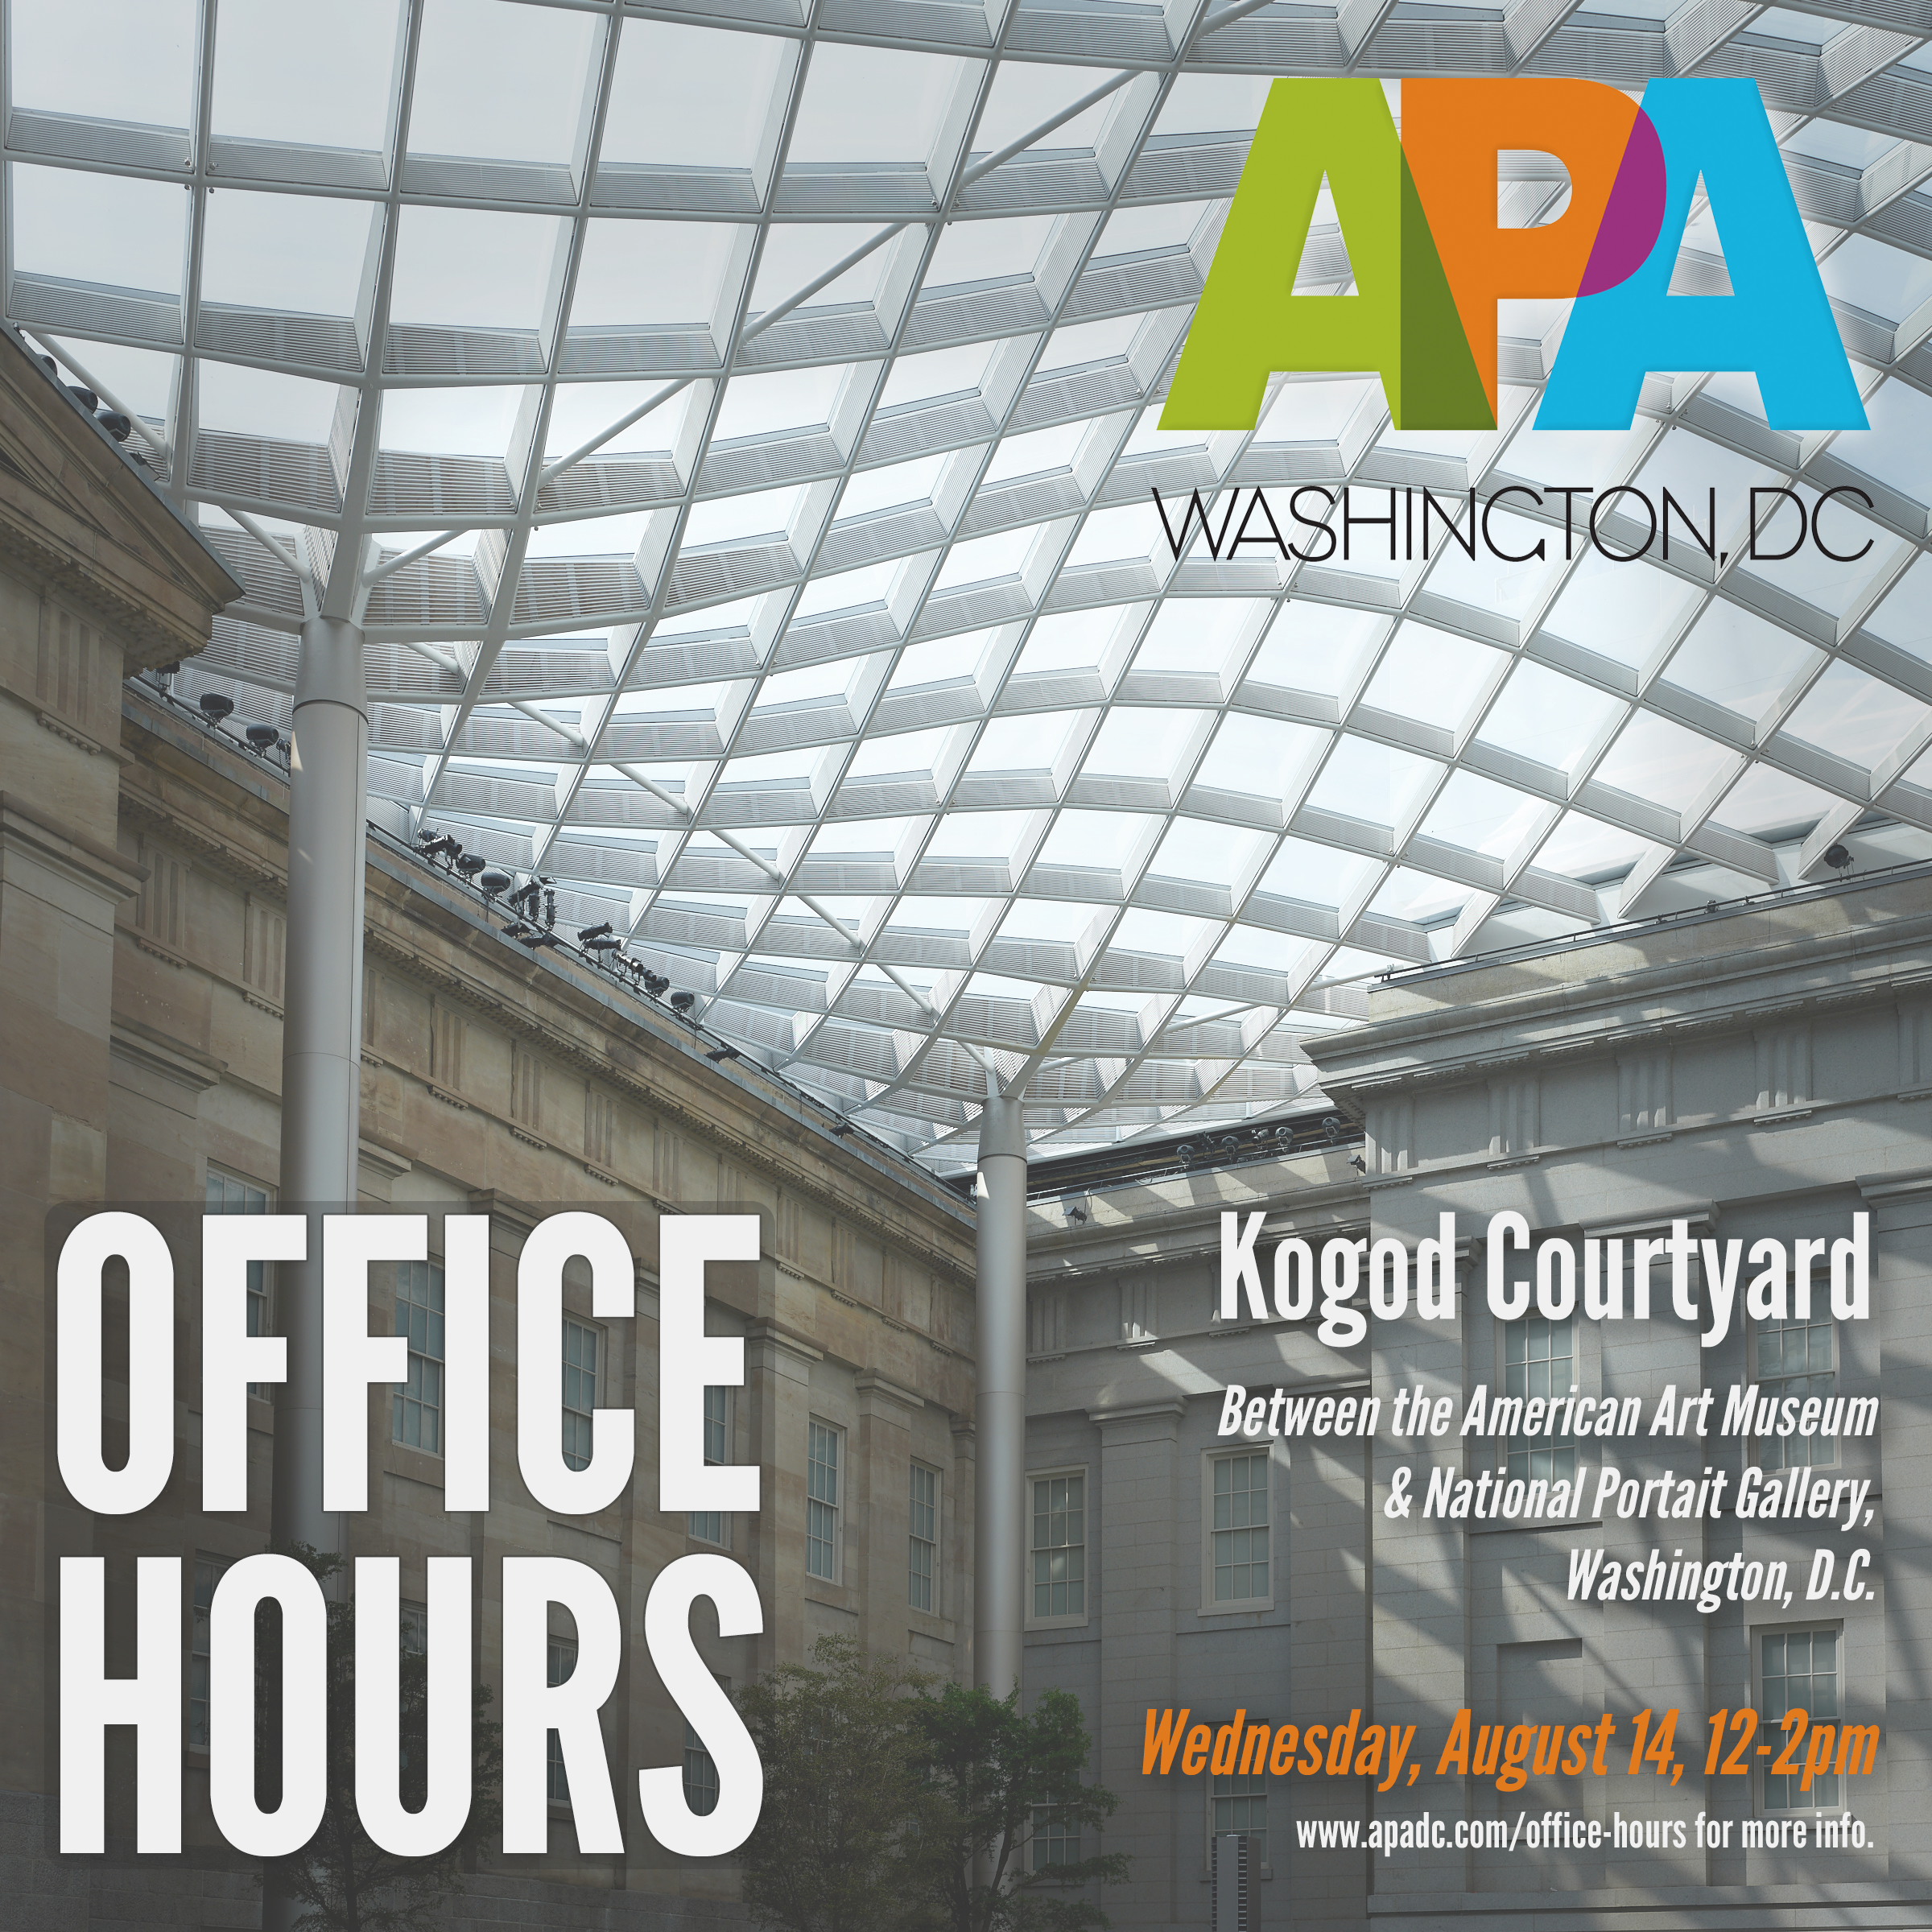 APA|DC Open Office Hours - 8/14, 12-2 pm, Kogod Courtyard next to the National Portrait Gallery. No theme this month, just stop by to talk about the industry, photography in general, or whatever comes up!